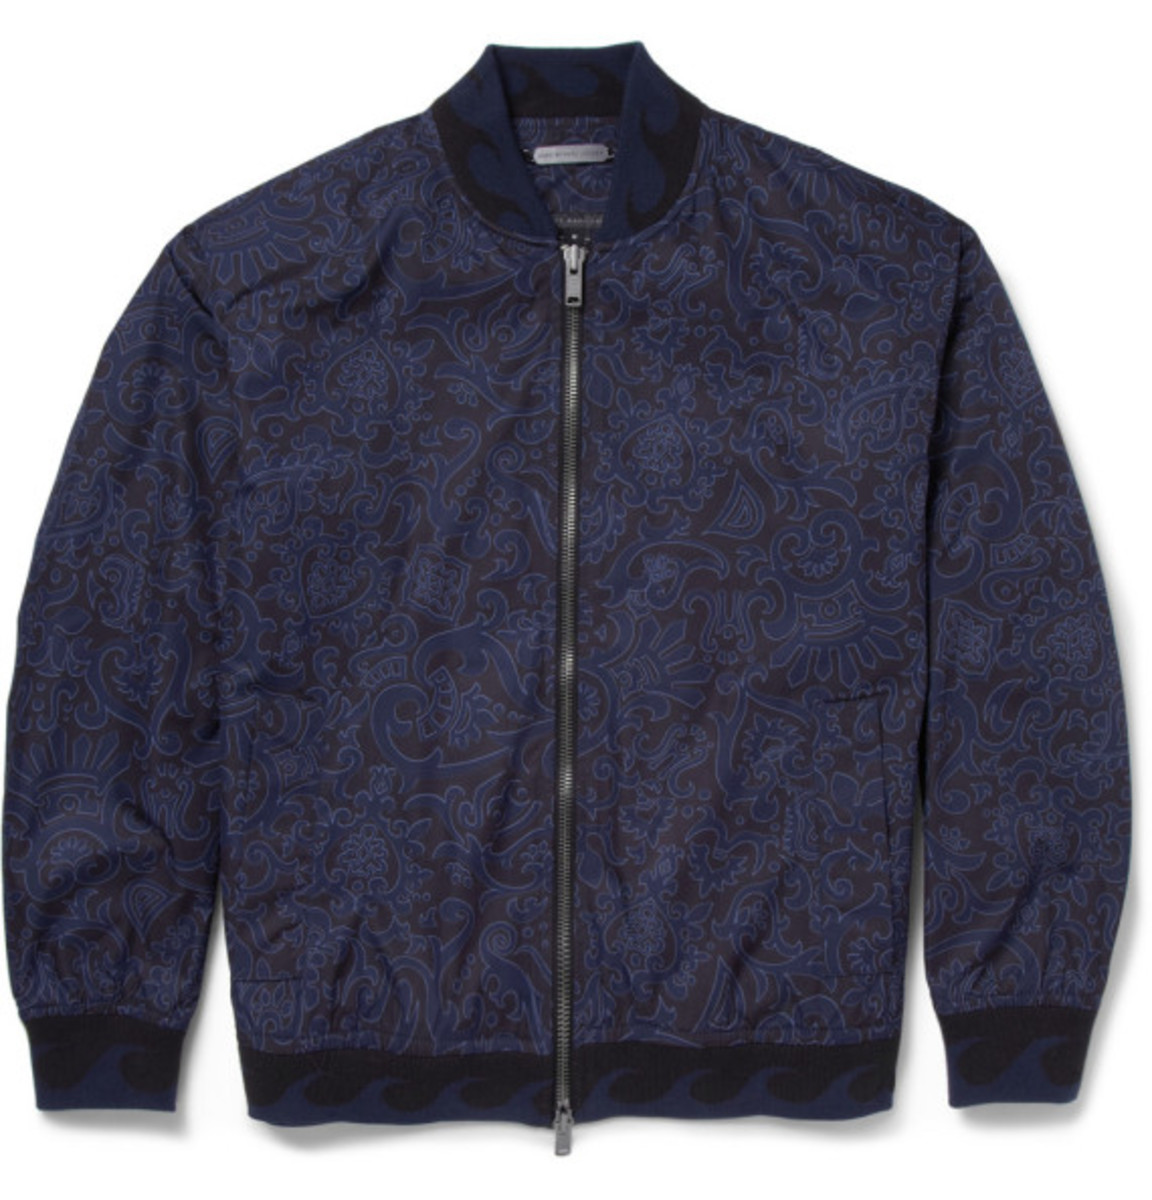 Spring 2014 Trends - Top 10 Bomber Jackets Available Now - 16